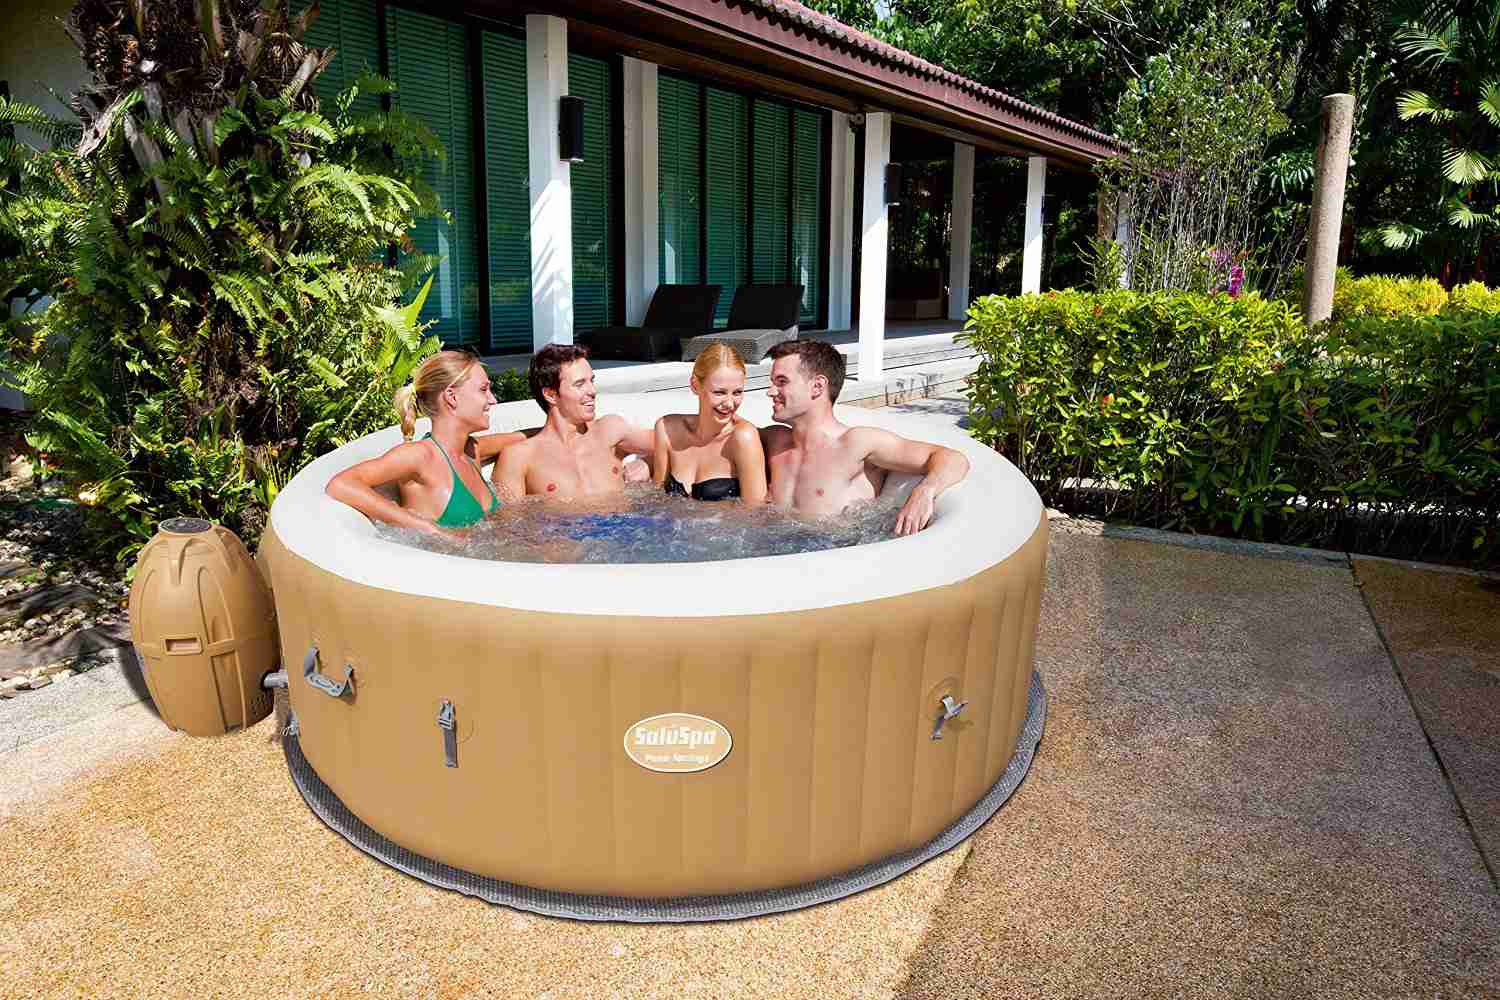 Best Portable Hot Tub Choices of 2018 - Best Hot Tub Reviews